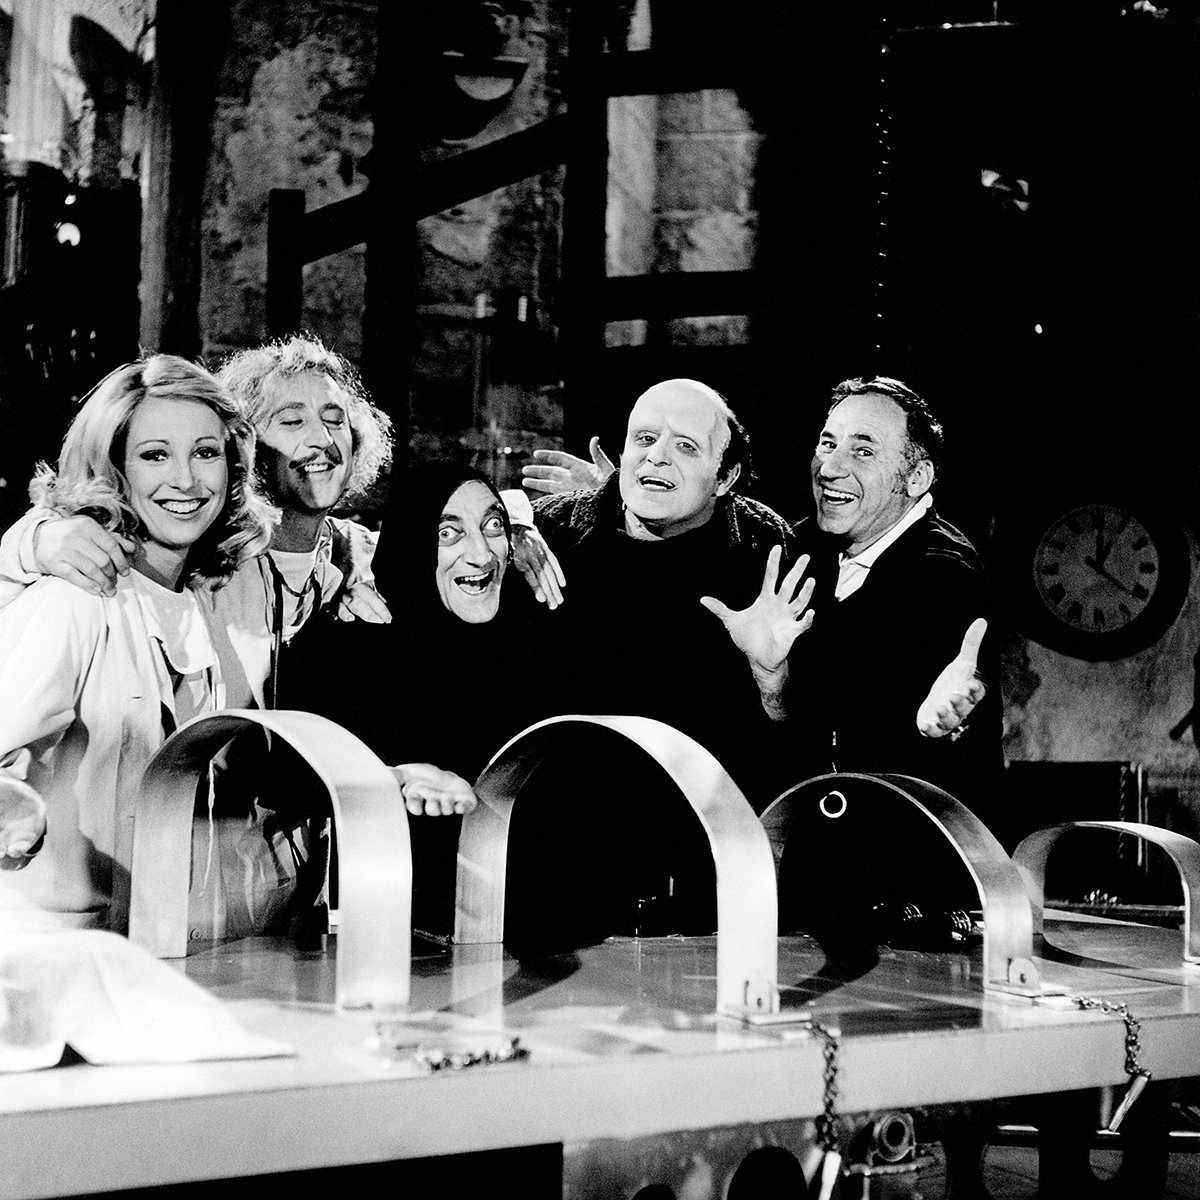 Happy 90th Birthday to a true master of comedy, Mel Brooks! https://t.co/pxXrh5fXGk